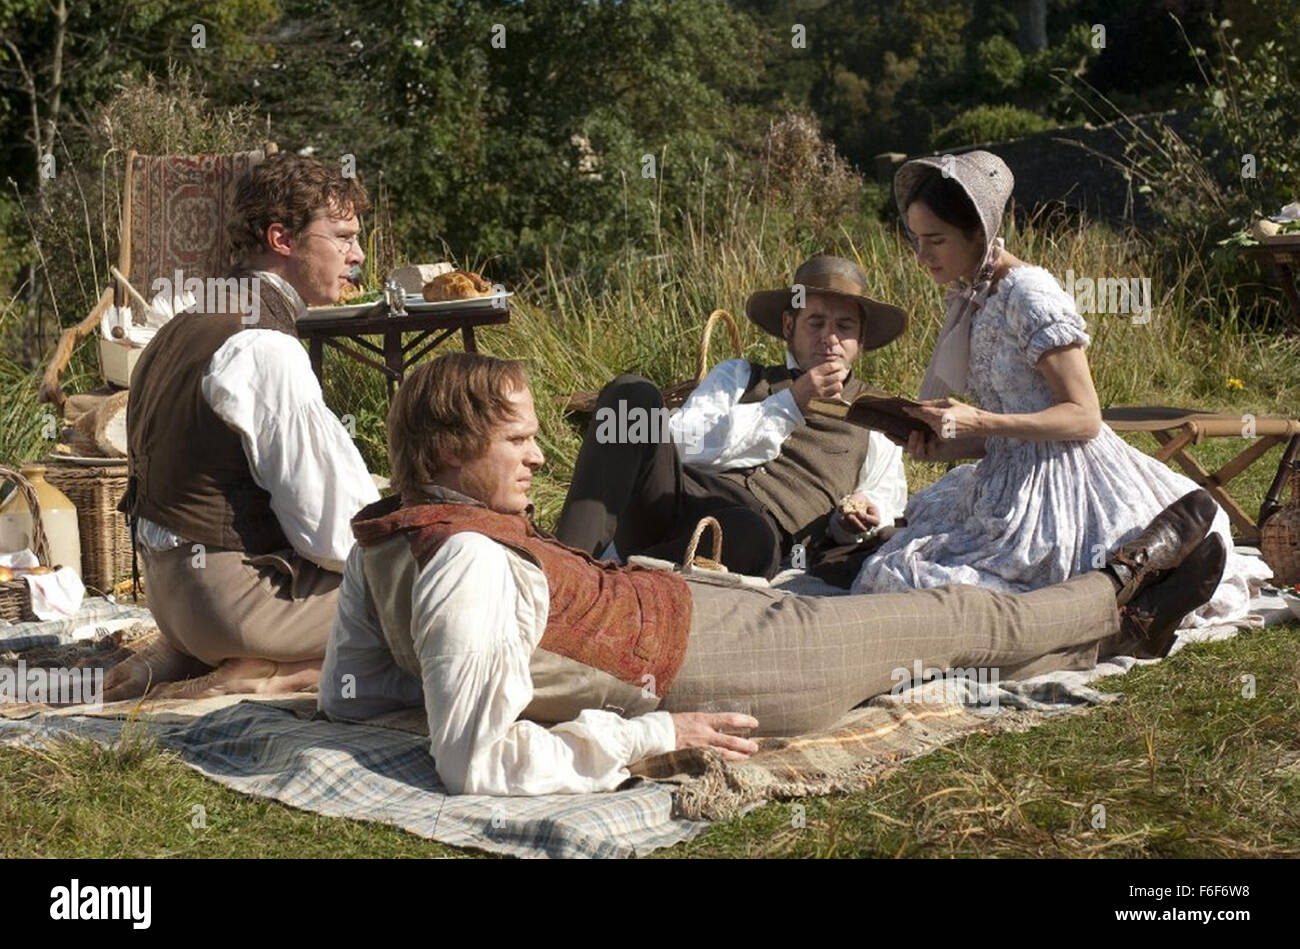 CREATION 2009 RPC/BBC Films production with Jennifer Connelly and Paul Bettany in front as Charles Darwin - Stock Image